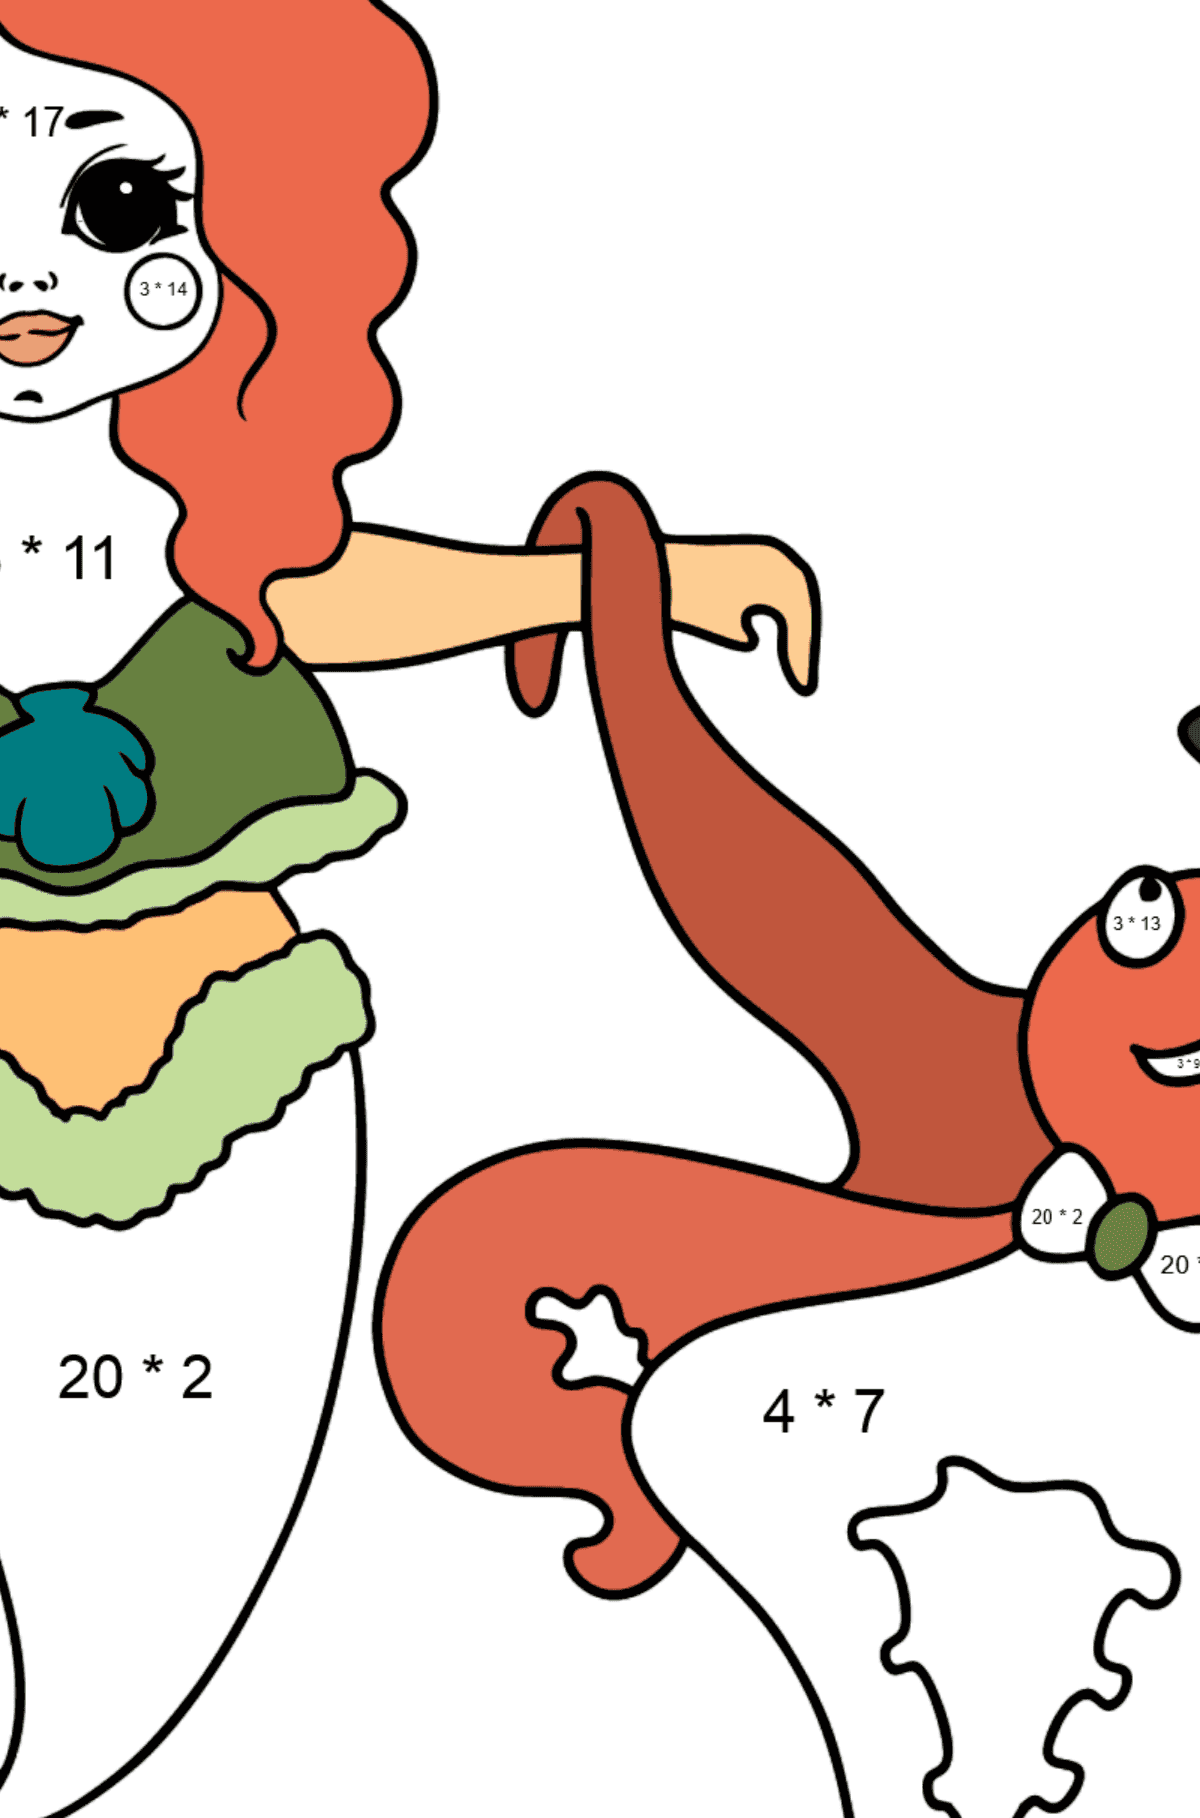 Mermaid and Octopus coloring page - Math Coloring - Multiplication for Kids